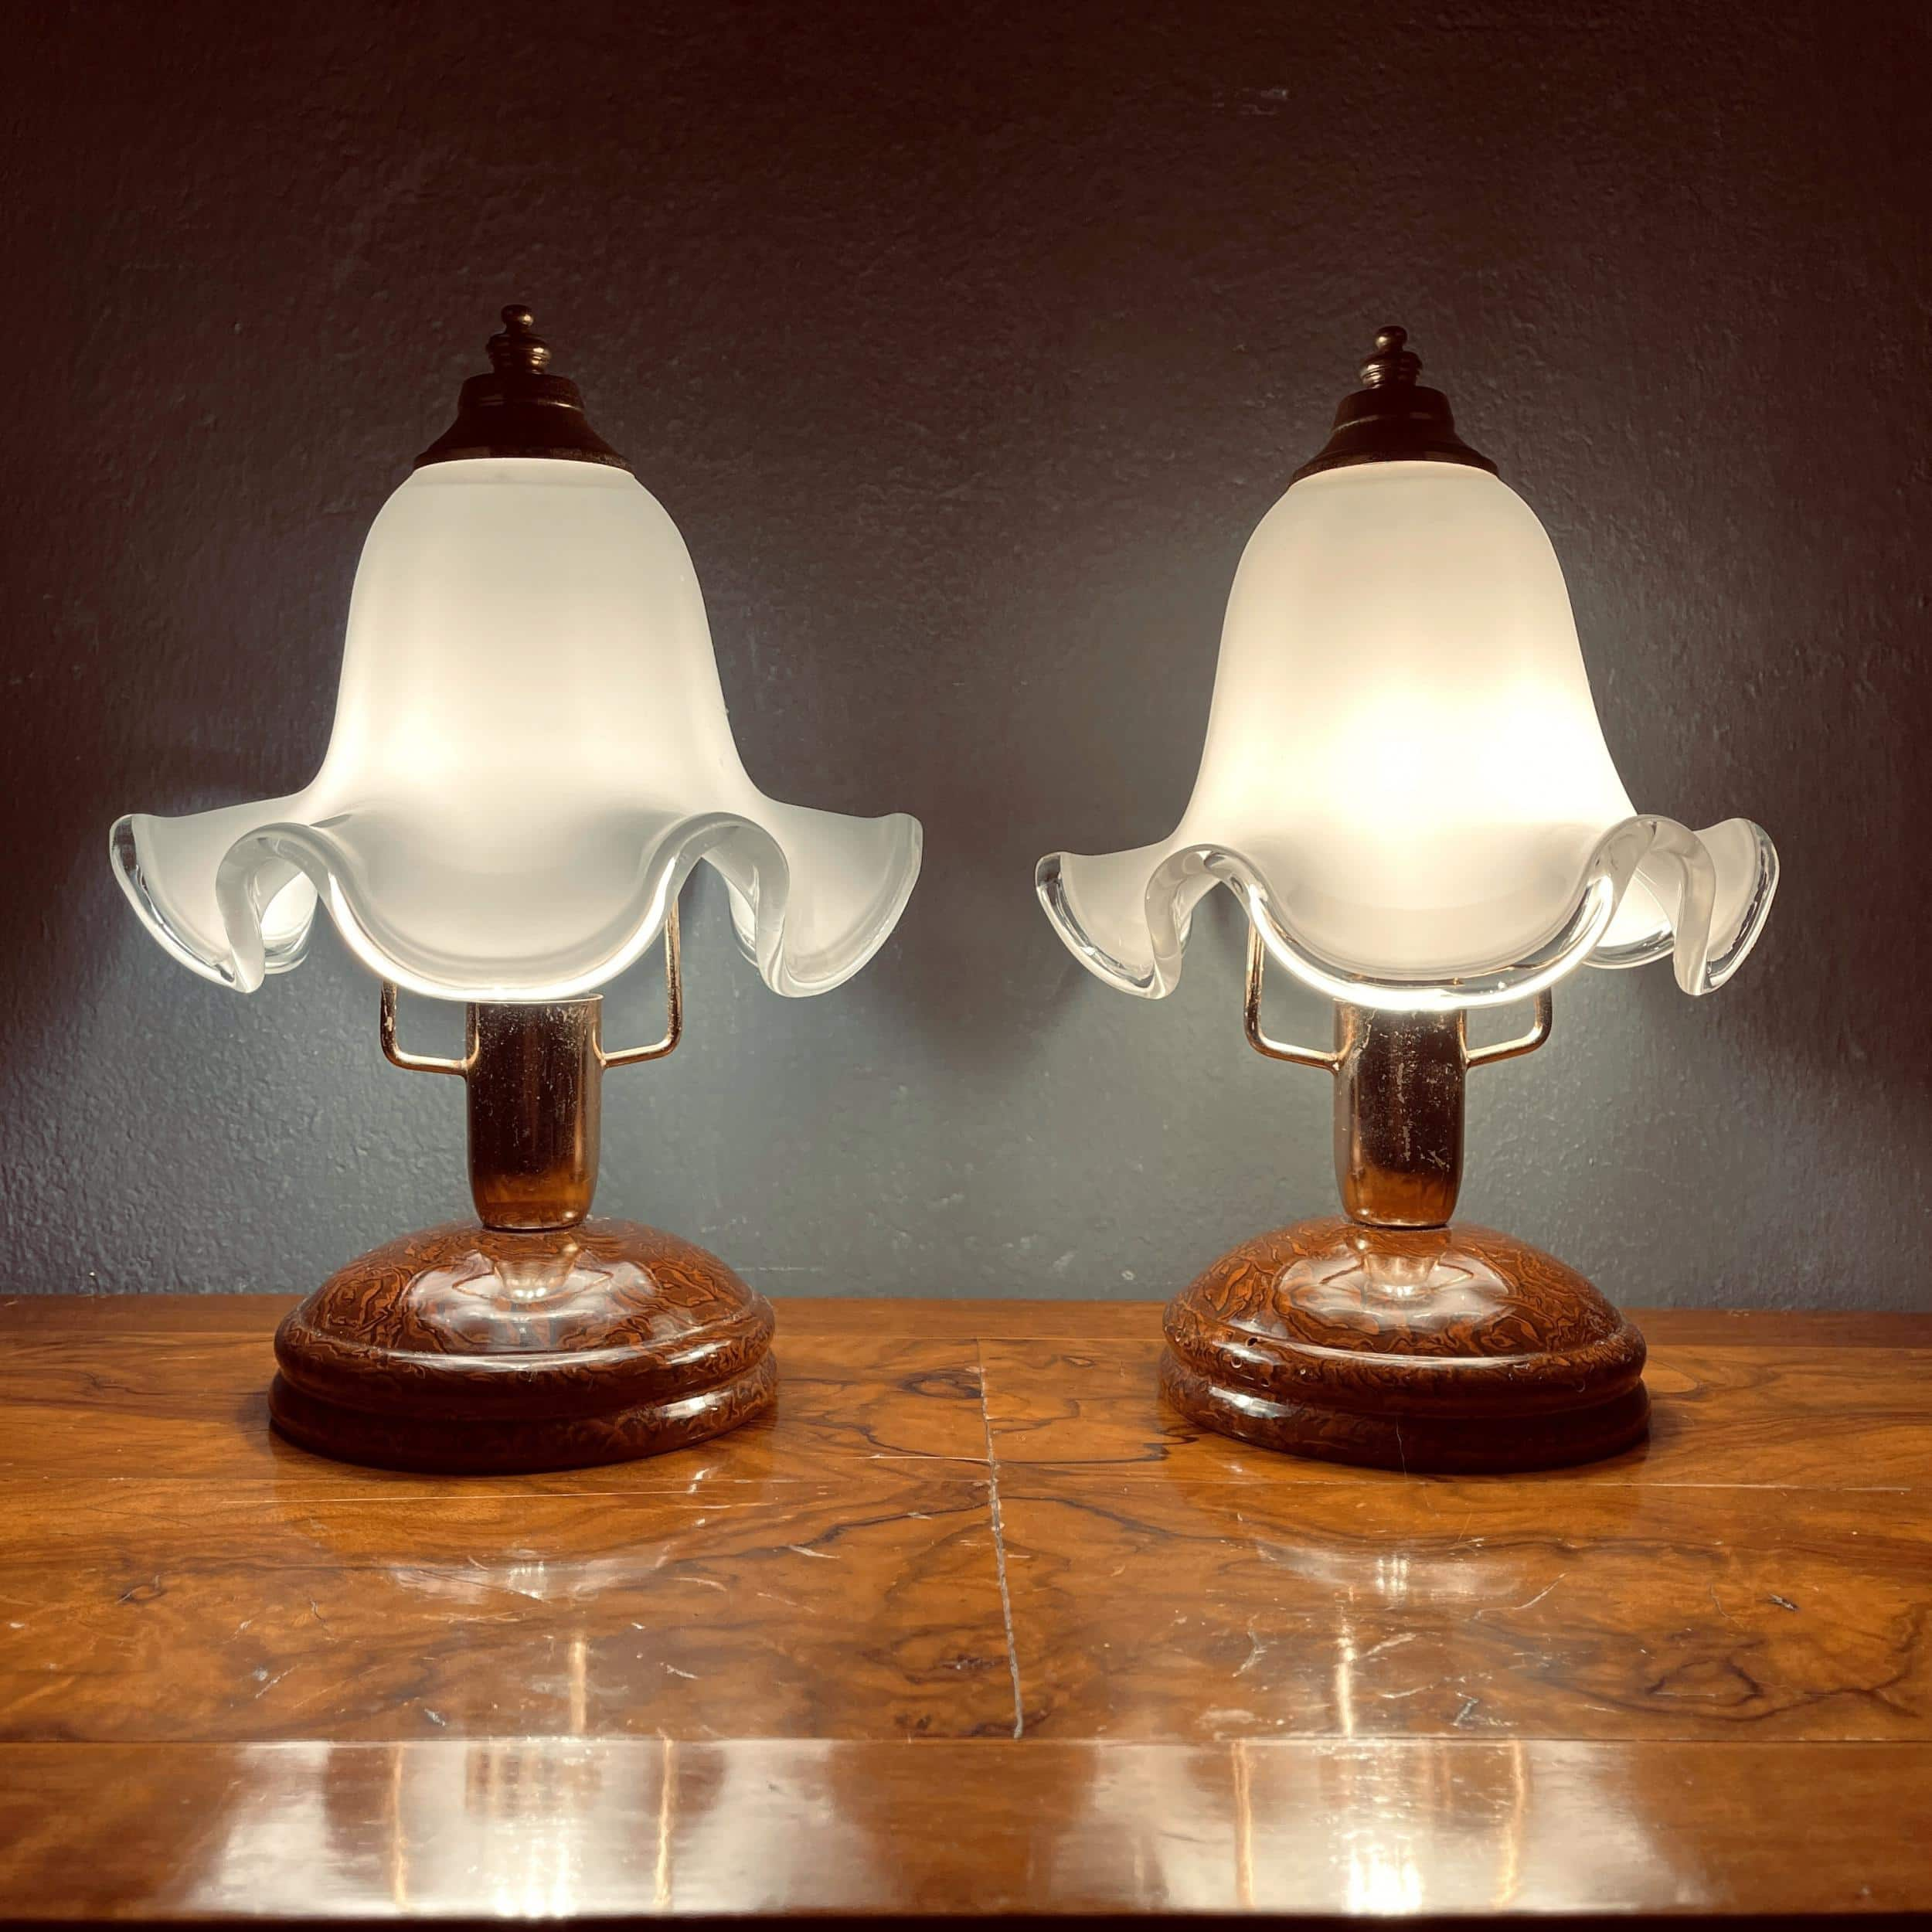 Pair of vintage murano night table lamp Italy 1970s